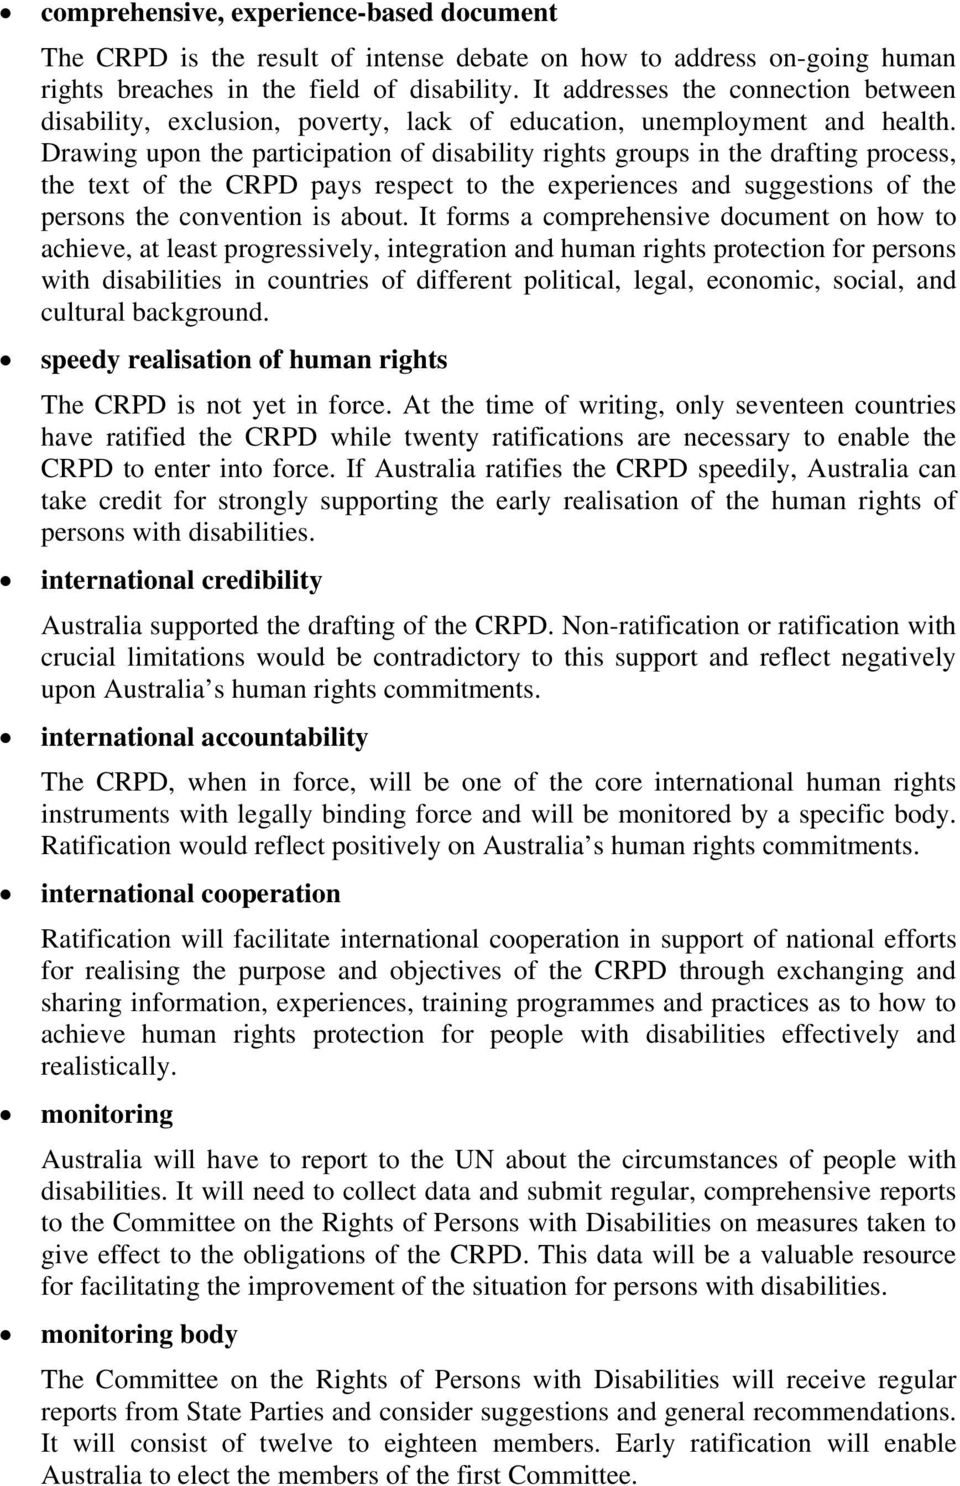 Drawing upon the participation of disability rights groups in the drafting process, the text of the CRPD pays respect to the experiences and suggestions of the persons the convention is about.